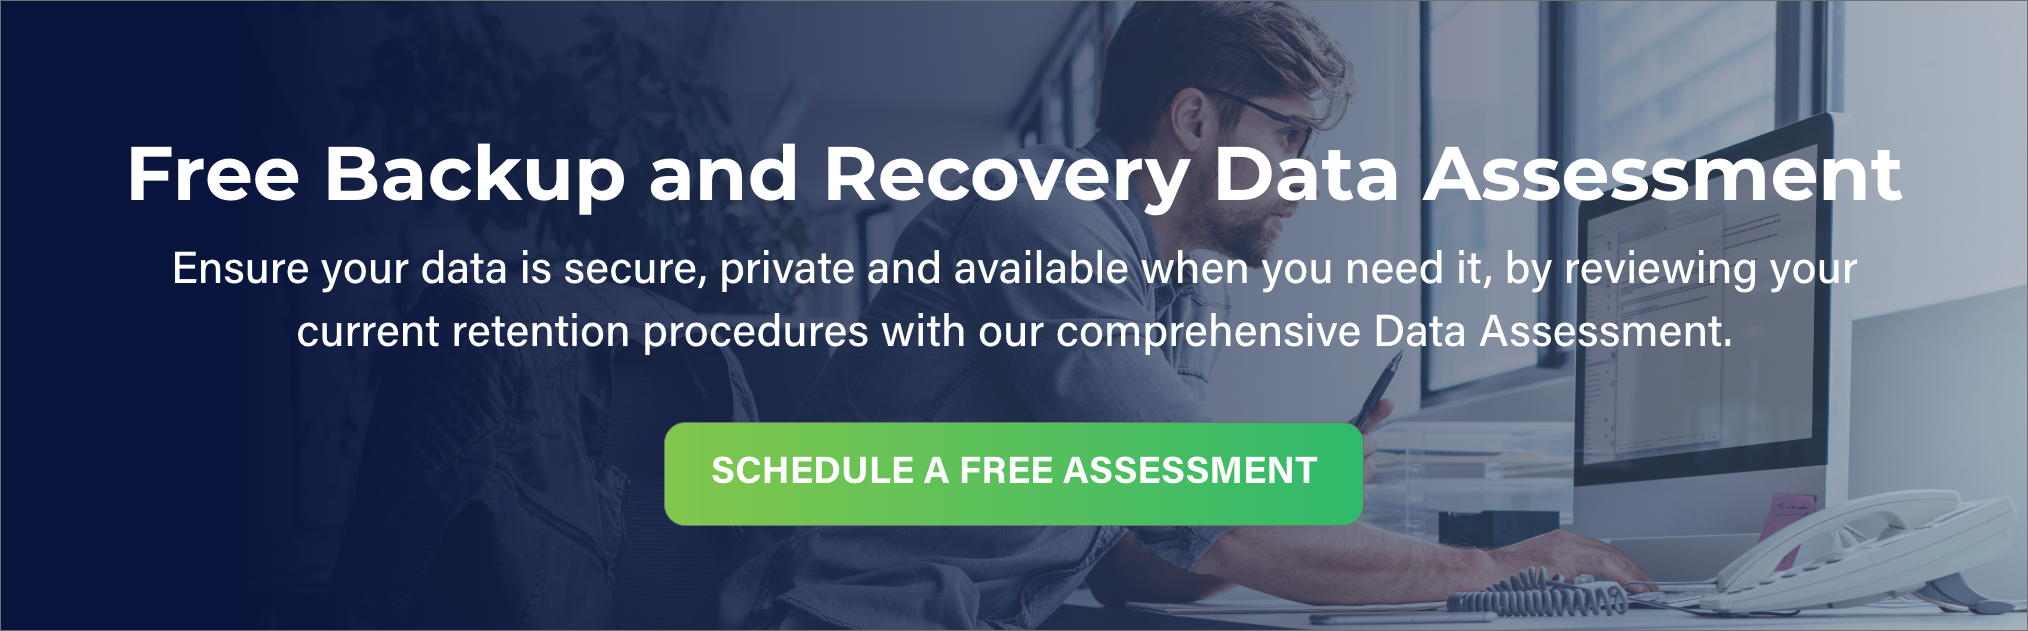 Free Data Assessment CTA Banner